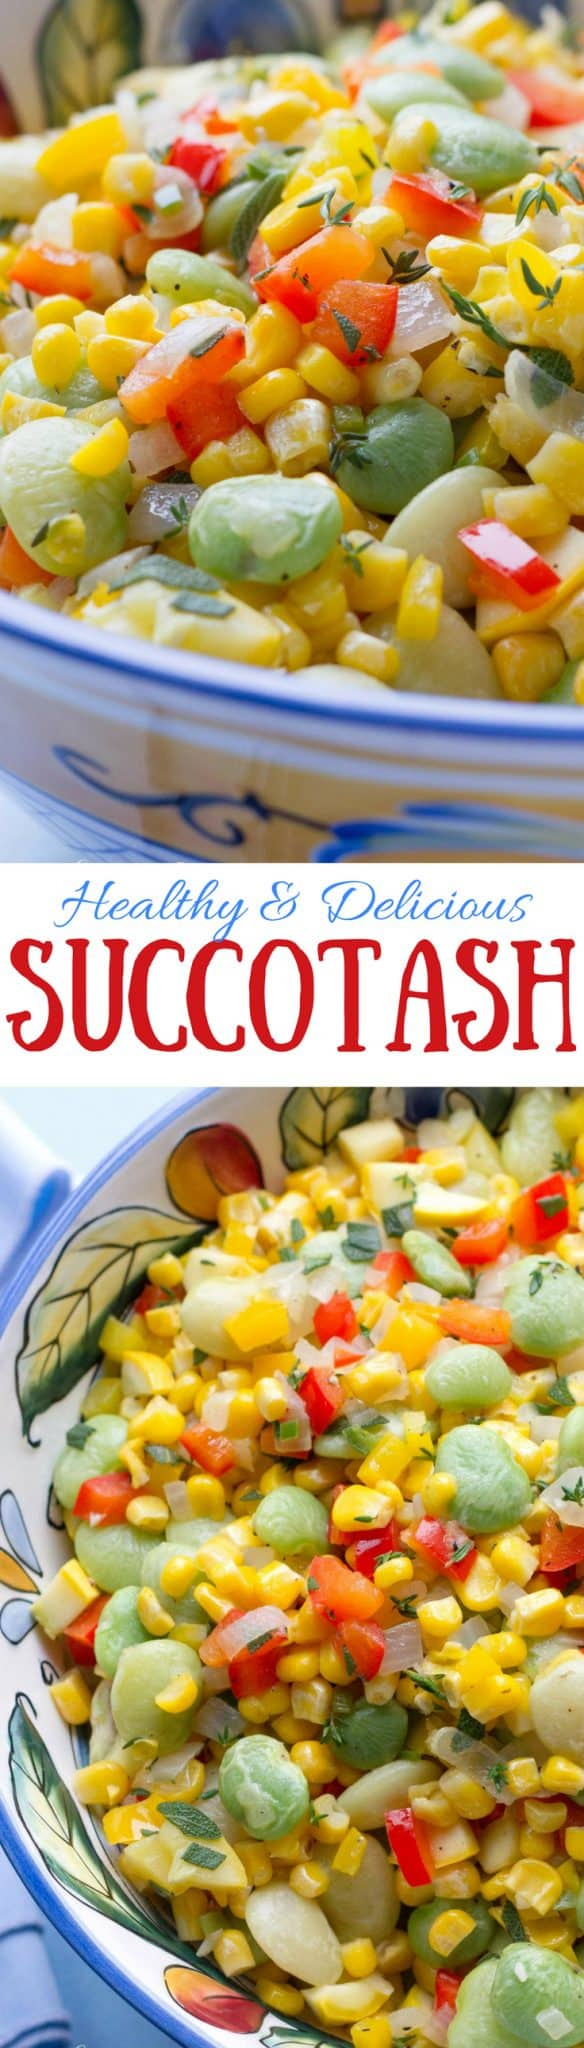 Succotash - a wonderful, colorful, healthy and full flavored classic American dish! www.savingdessert.com